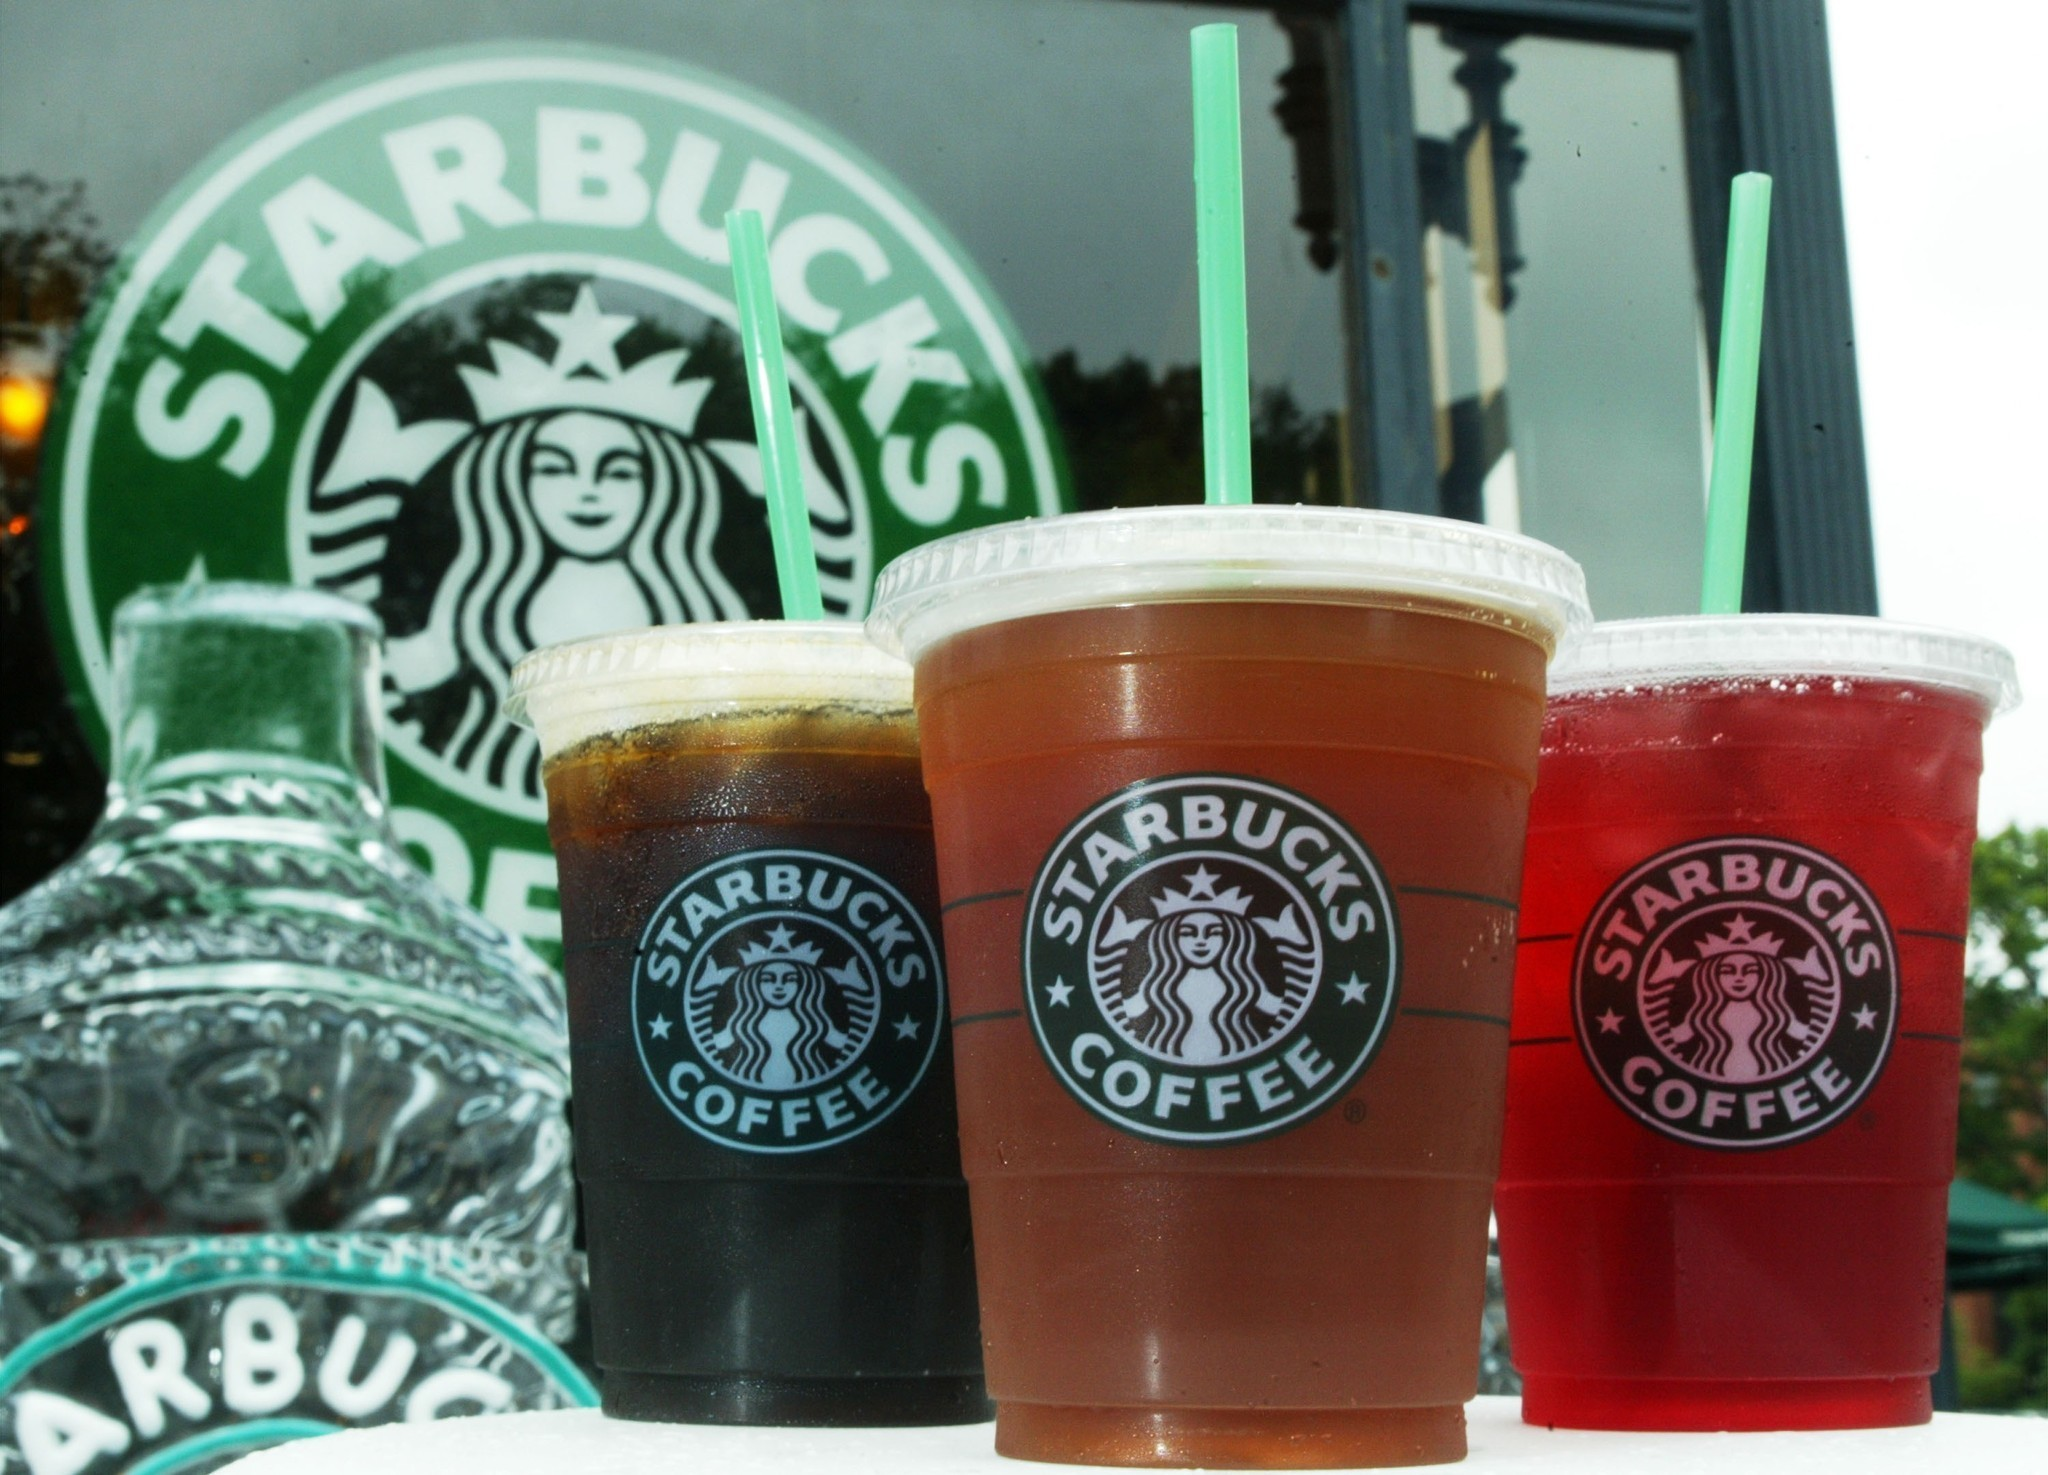 Starbucks and Anheuser-Busch are selling tea together